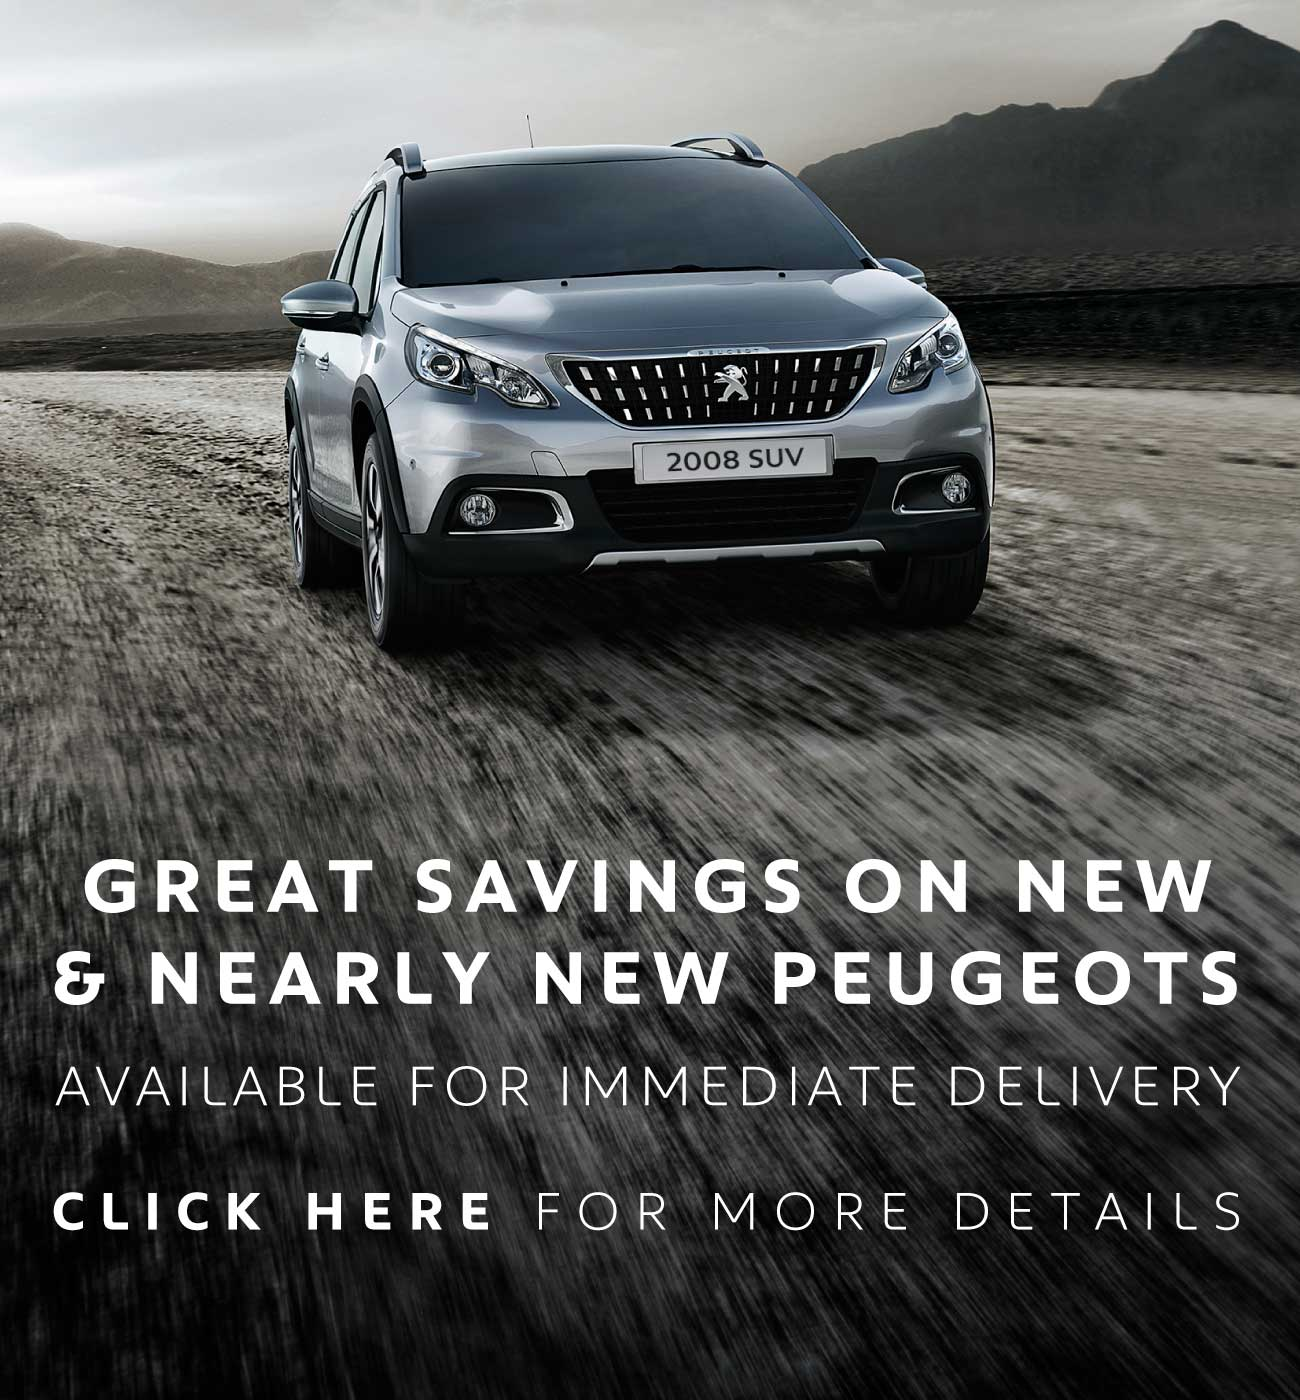 MM Great Savings on New and Nearly New Peugeots